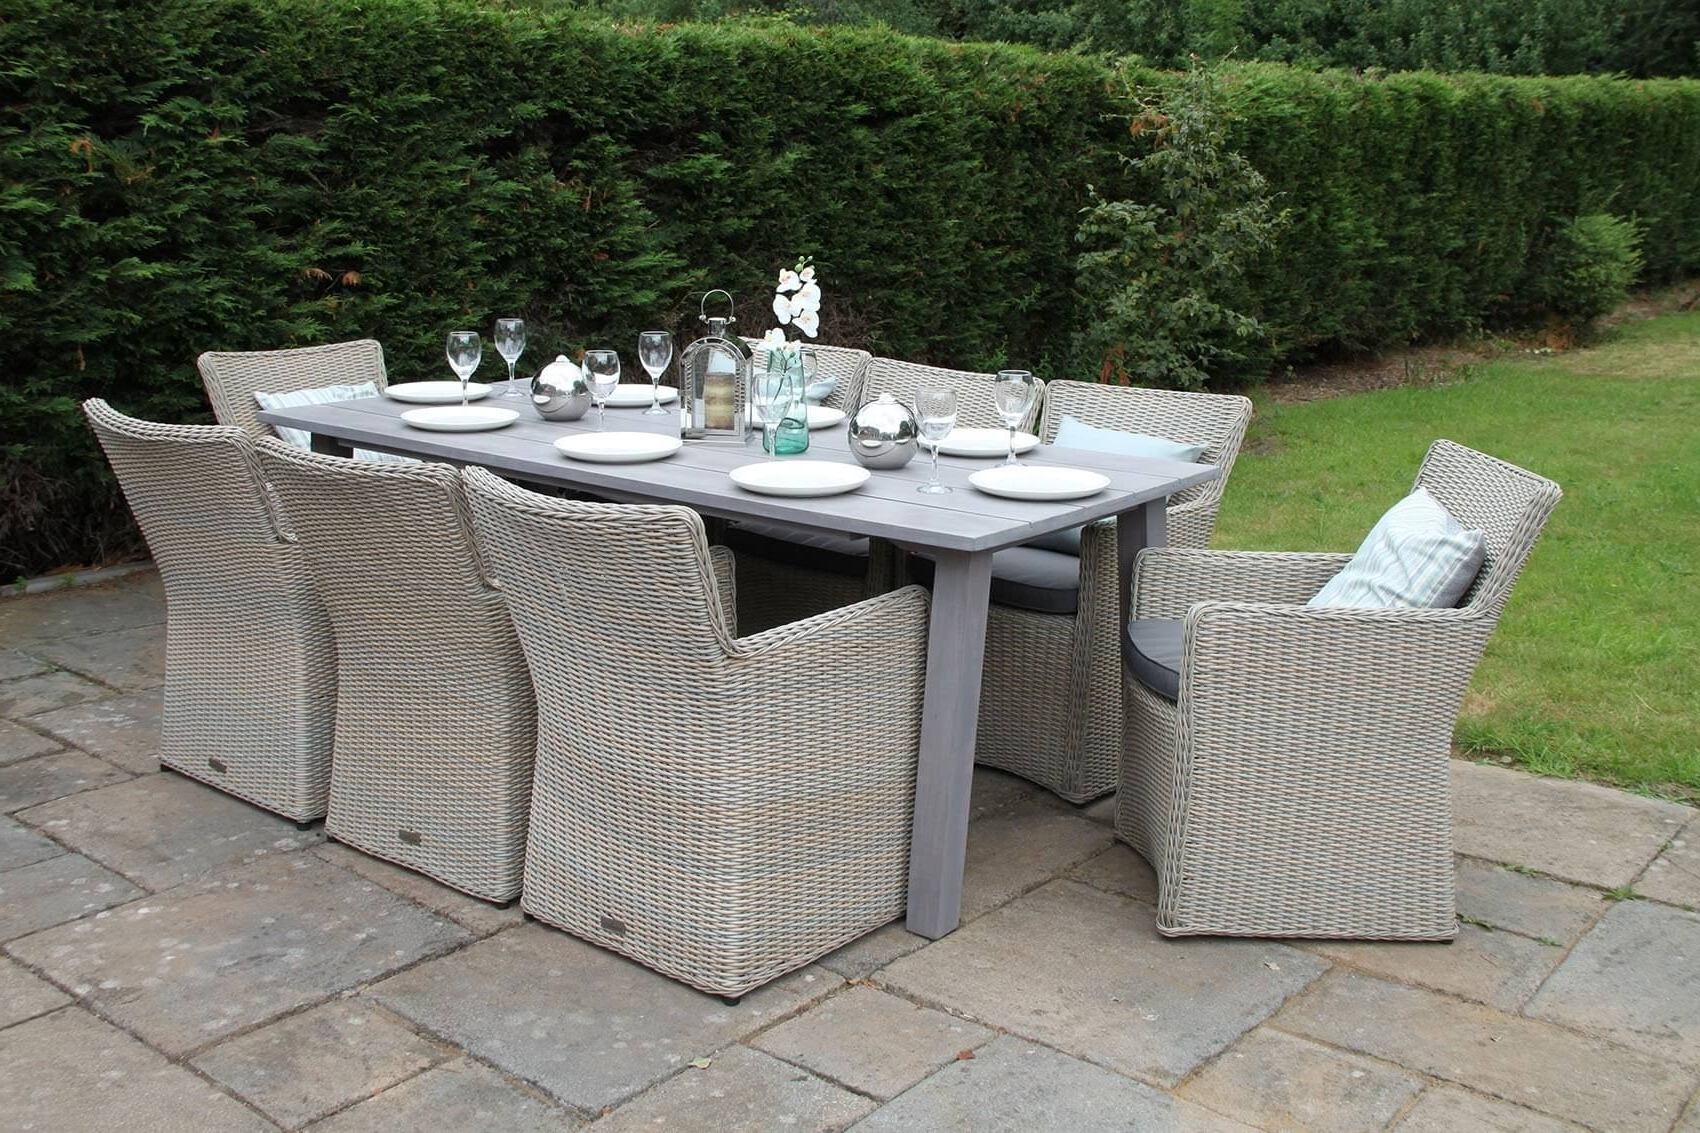 8 Seat Outdoor Dining Tables within Most Current Rattan Dining Set - Rectangular 8 Seater Garden Table - Grey